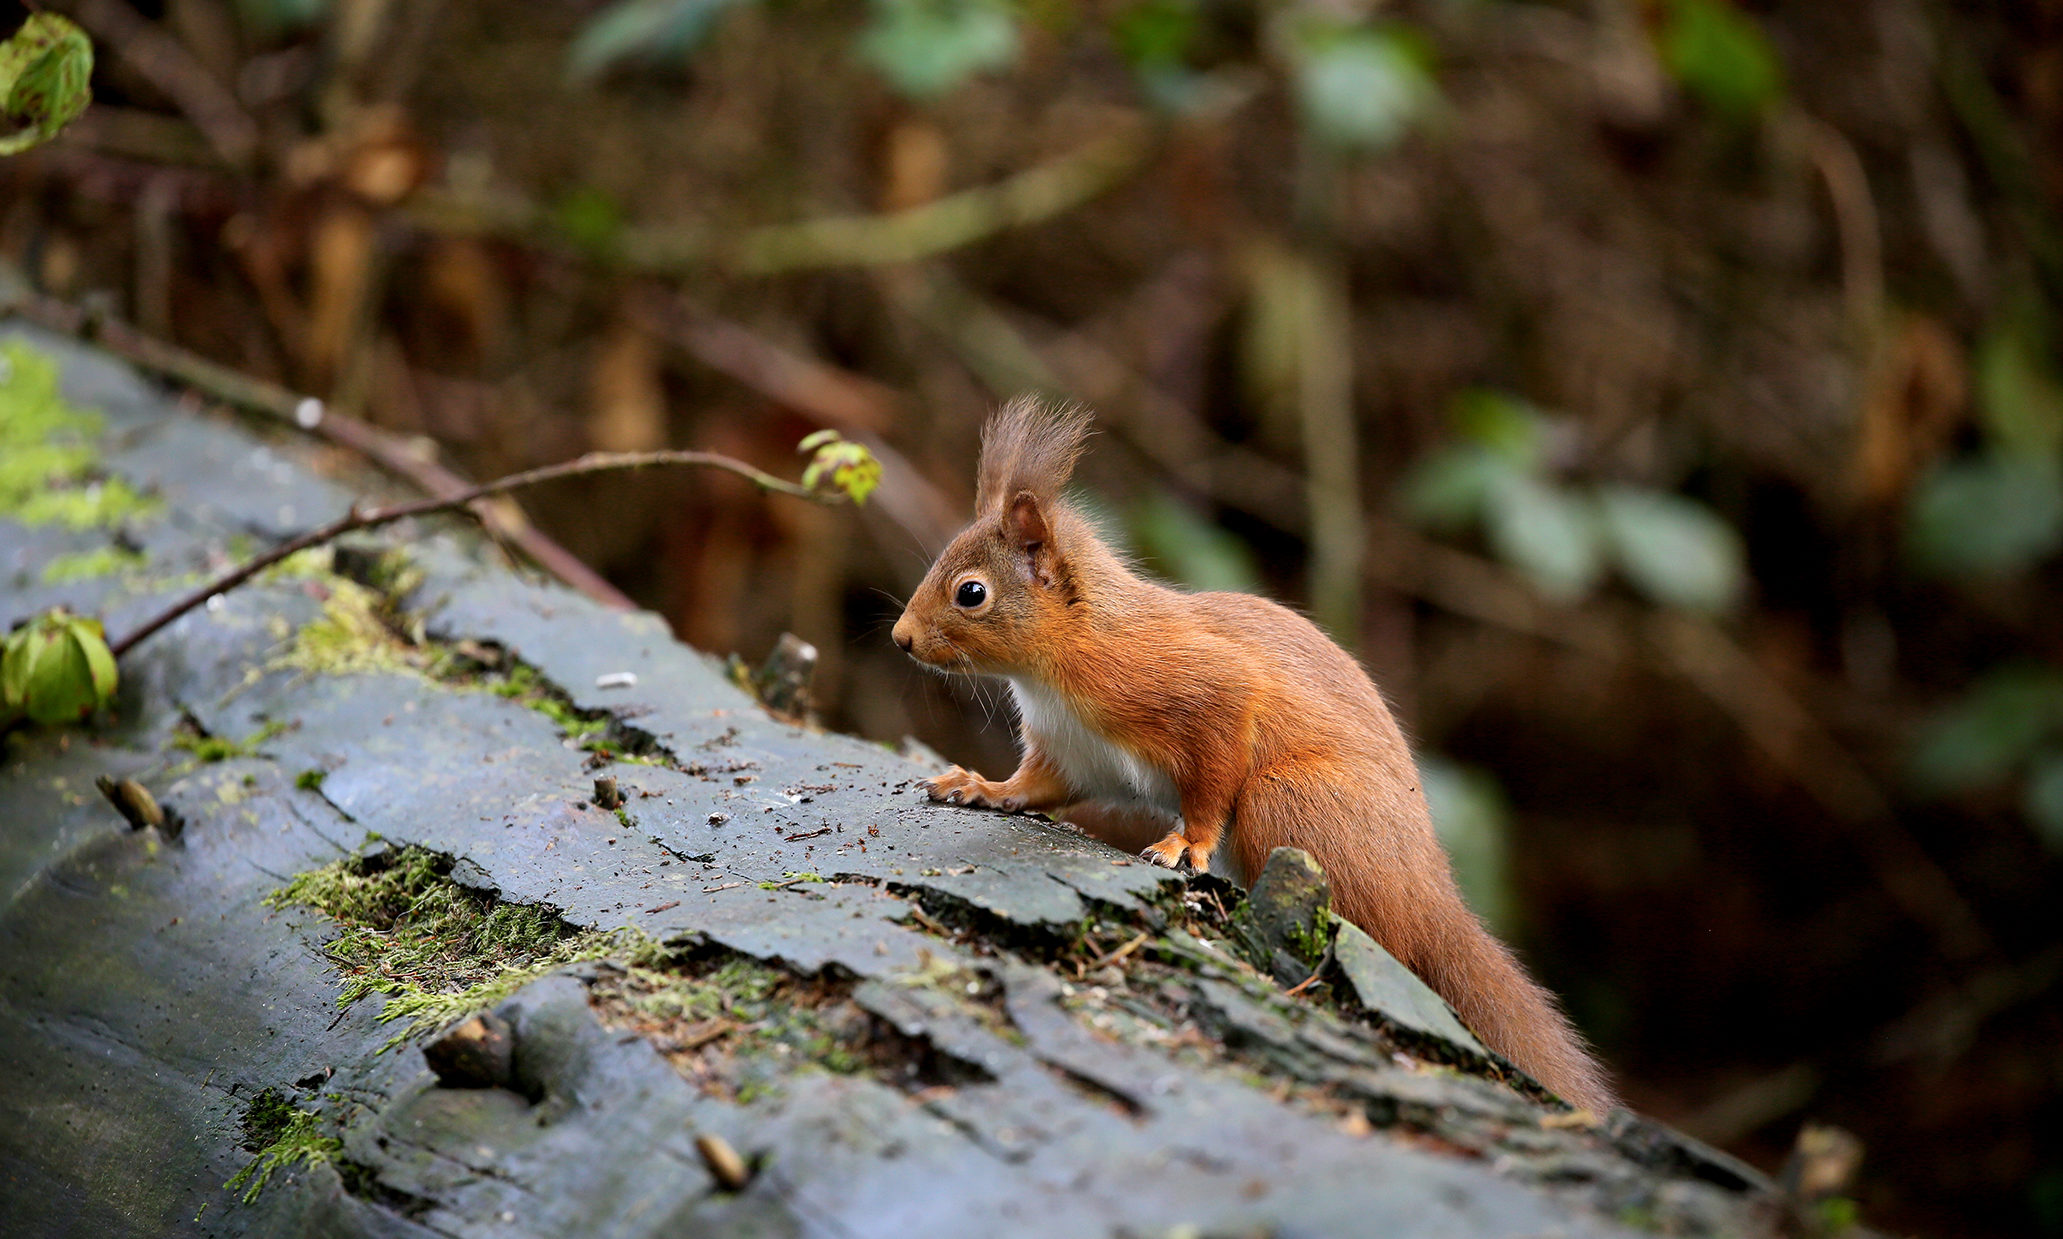 Red squirrel. Pic: Keilidh Ewan.